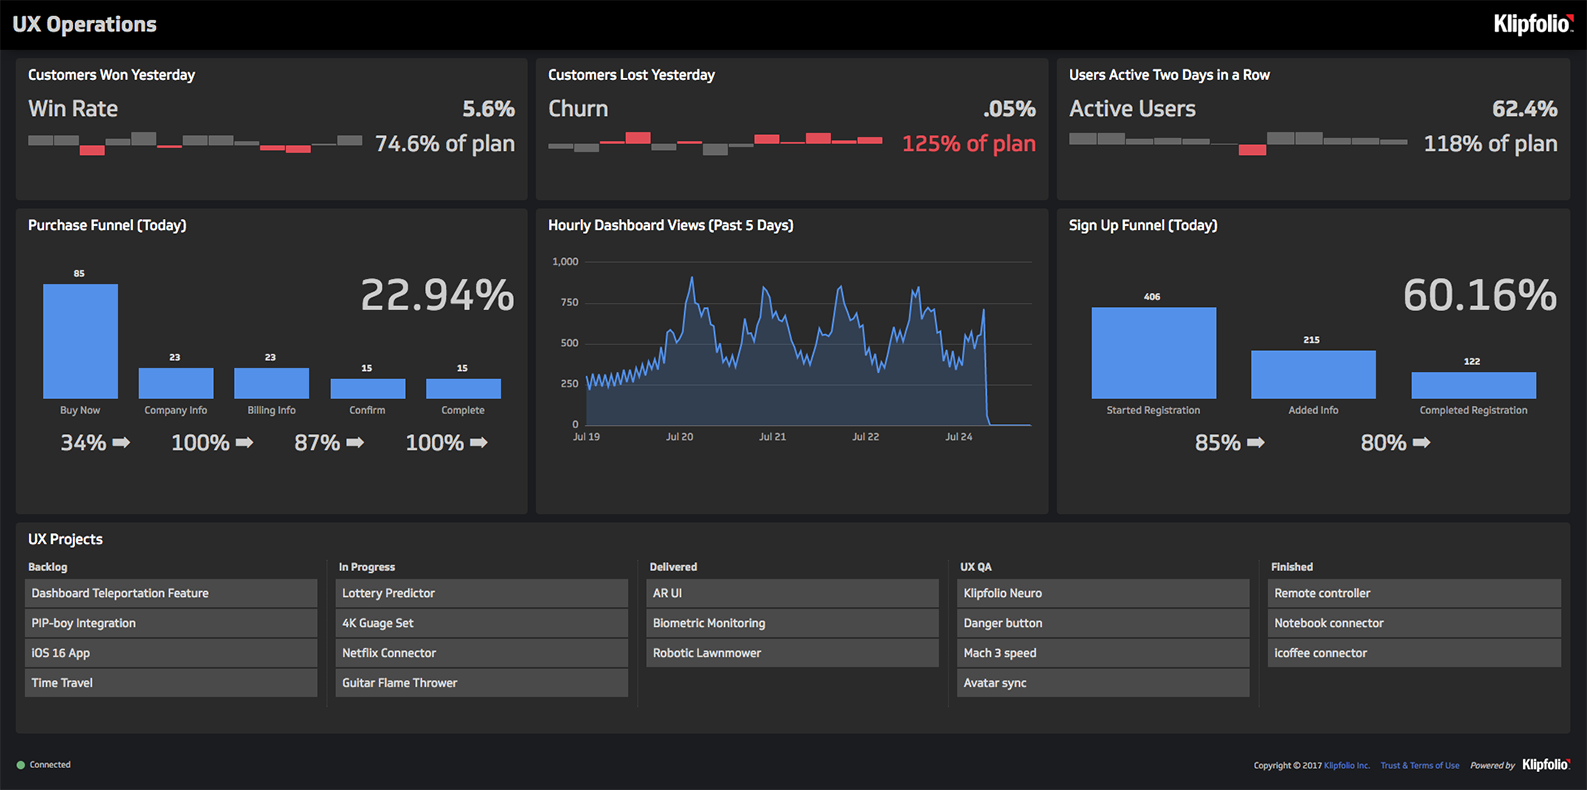 Live Dashboard | UX Operations Dashboard: UX Operations Dashboard